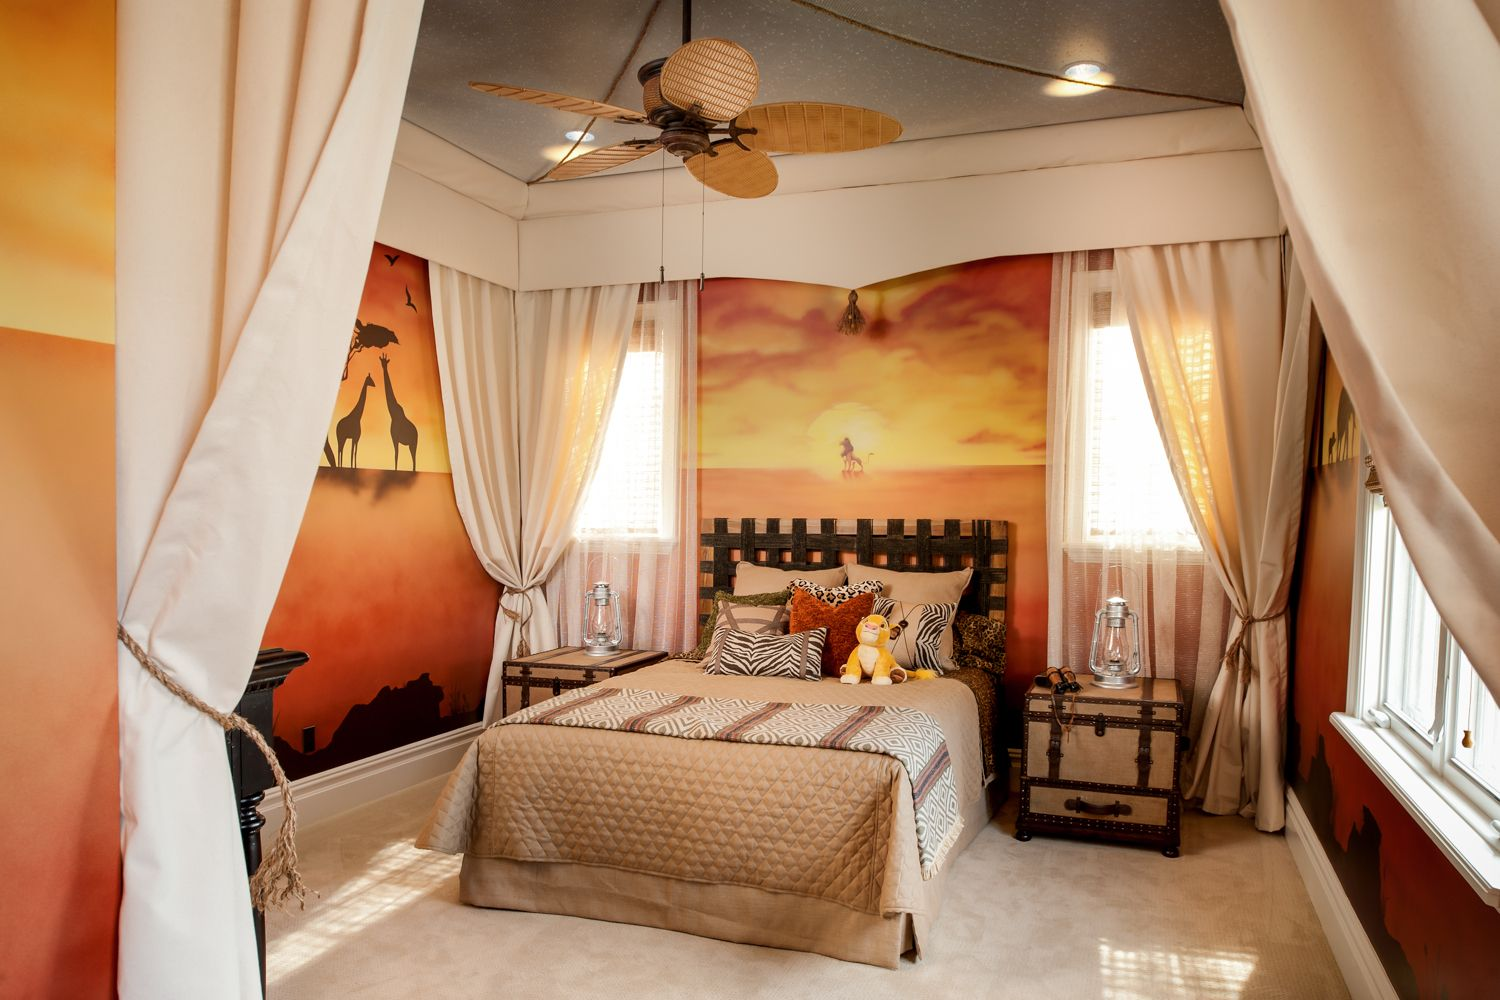 Lion King Themed Baby Room   Google Search Bedroom Ideas, Bedroom Themes, Bedroom  Decor